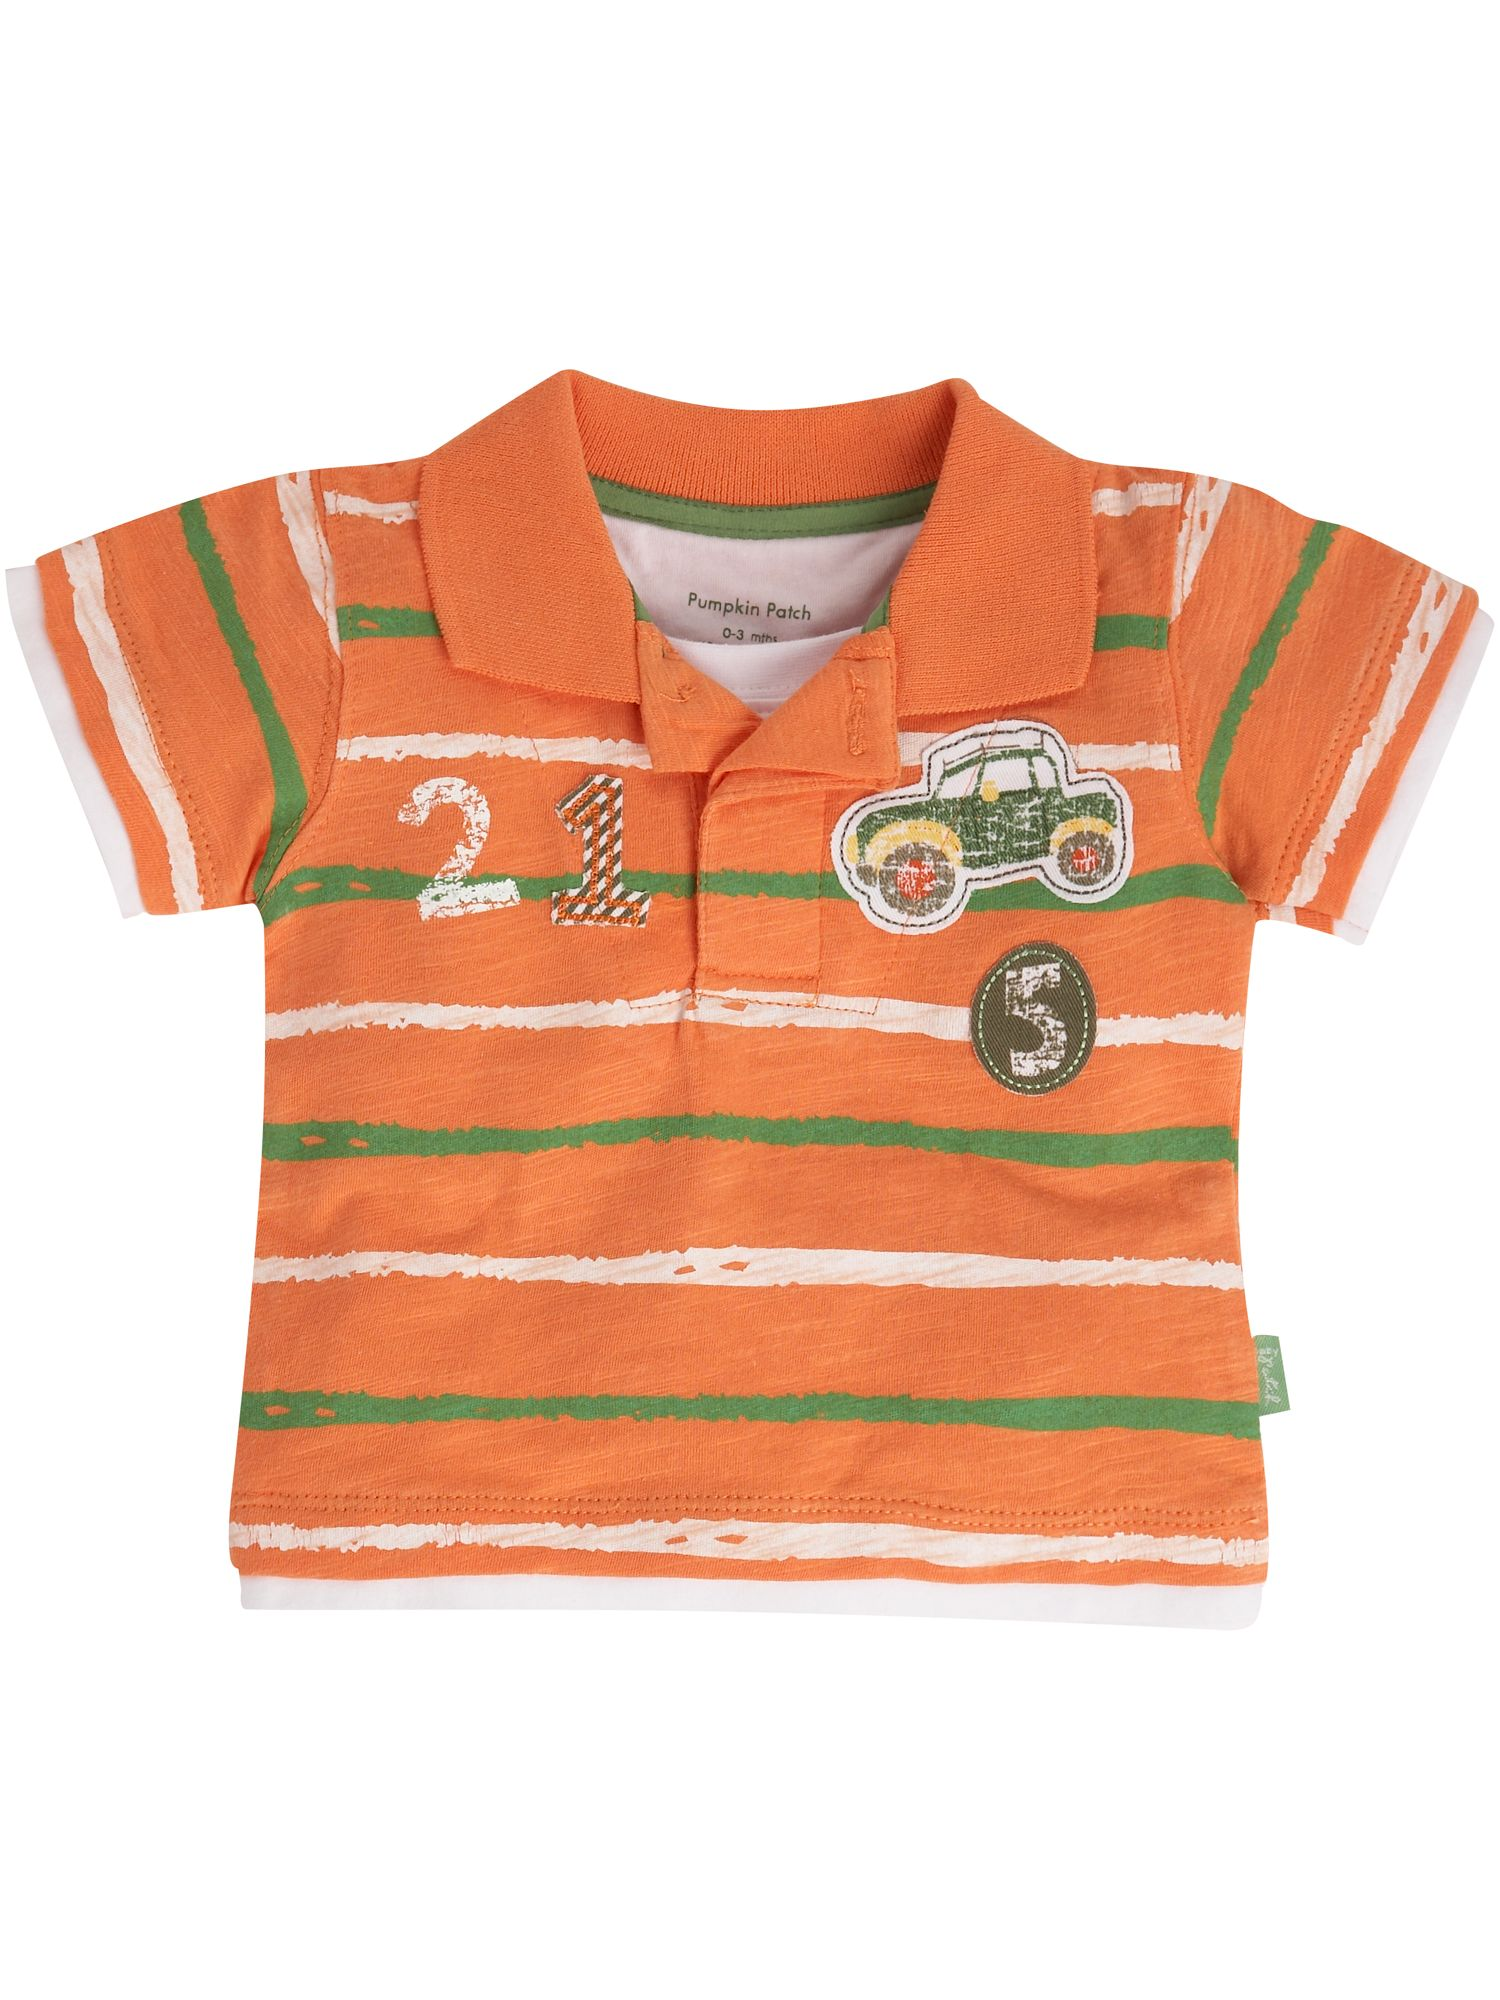 Pumpkin Patch Polo and T-shirt product image